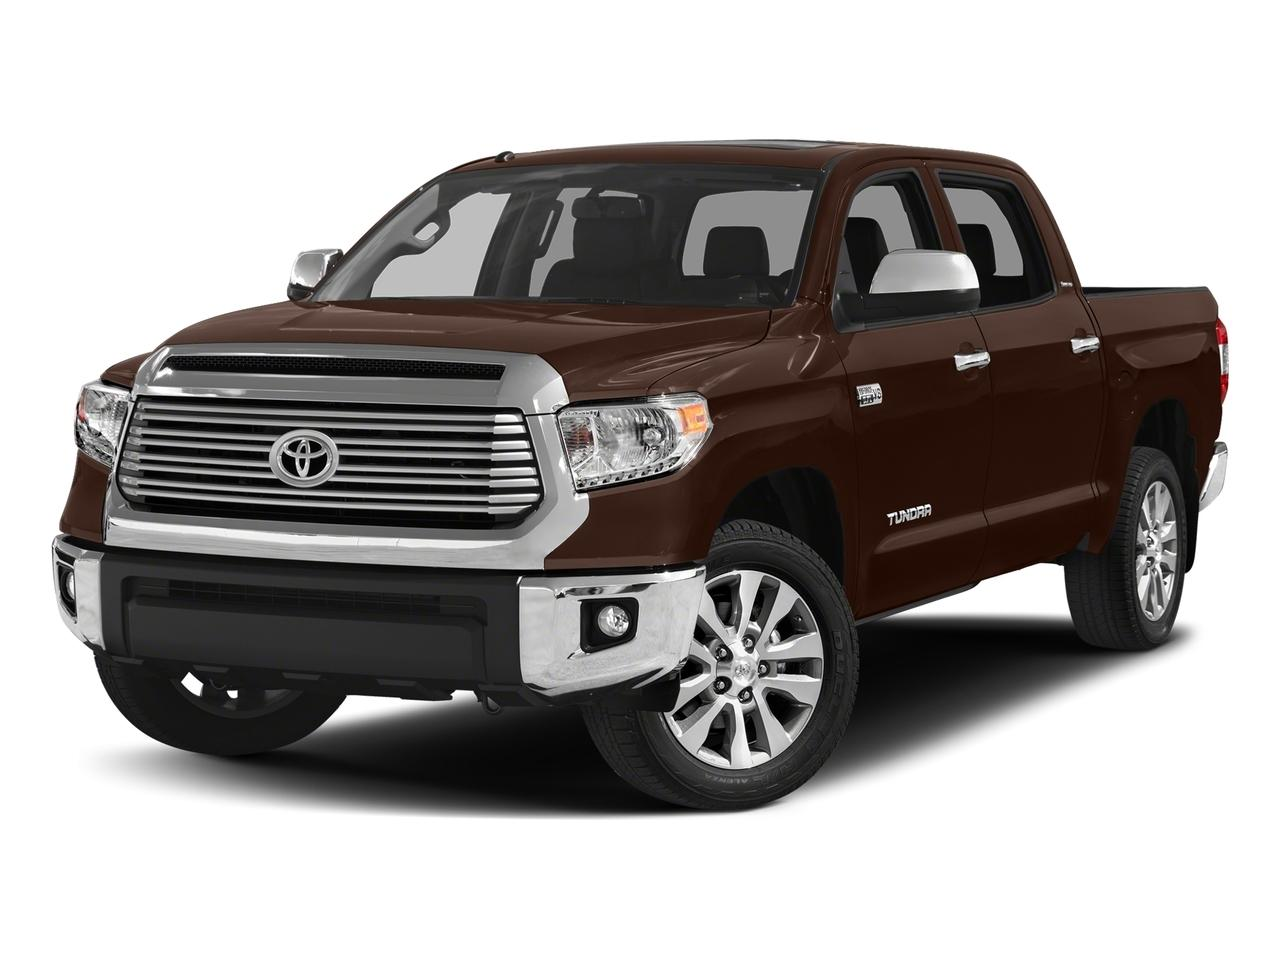 2017 Toyota Tundra 4WD Vehicle Photo in Trevose, PA 19053-4984